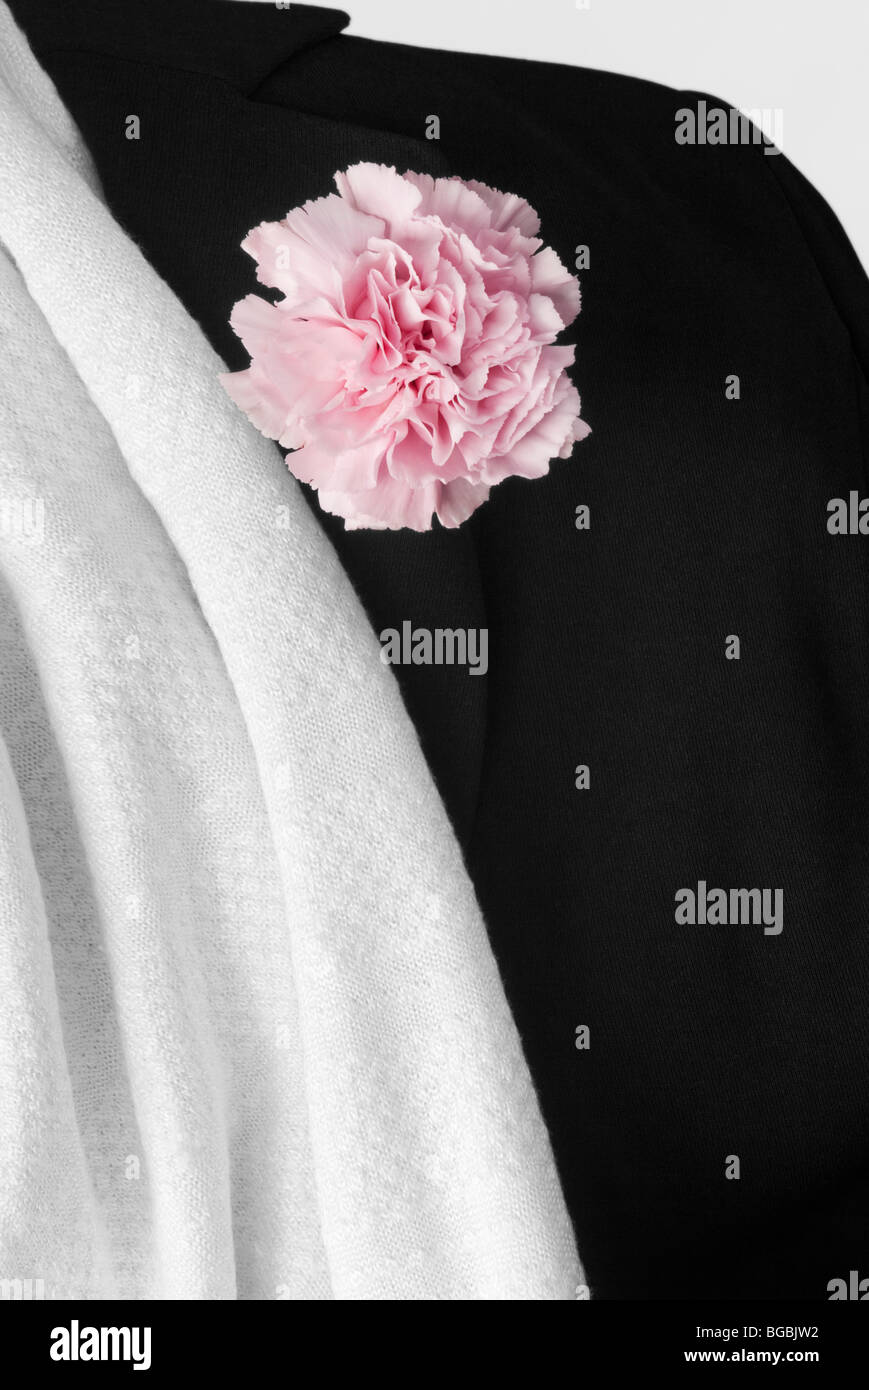 White shawl and Back Jacket with Flower in Buttonhole - Stock Image